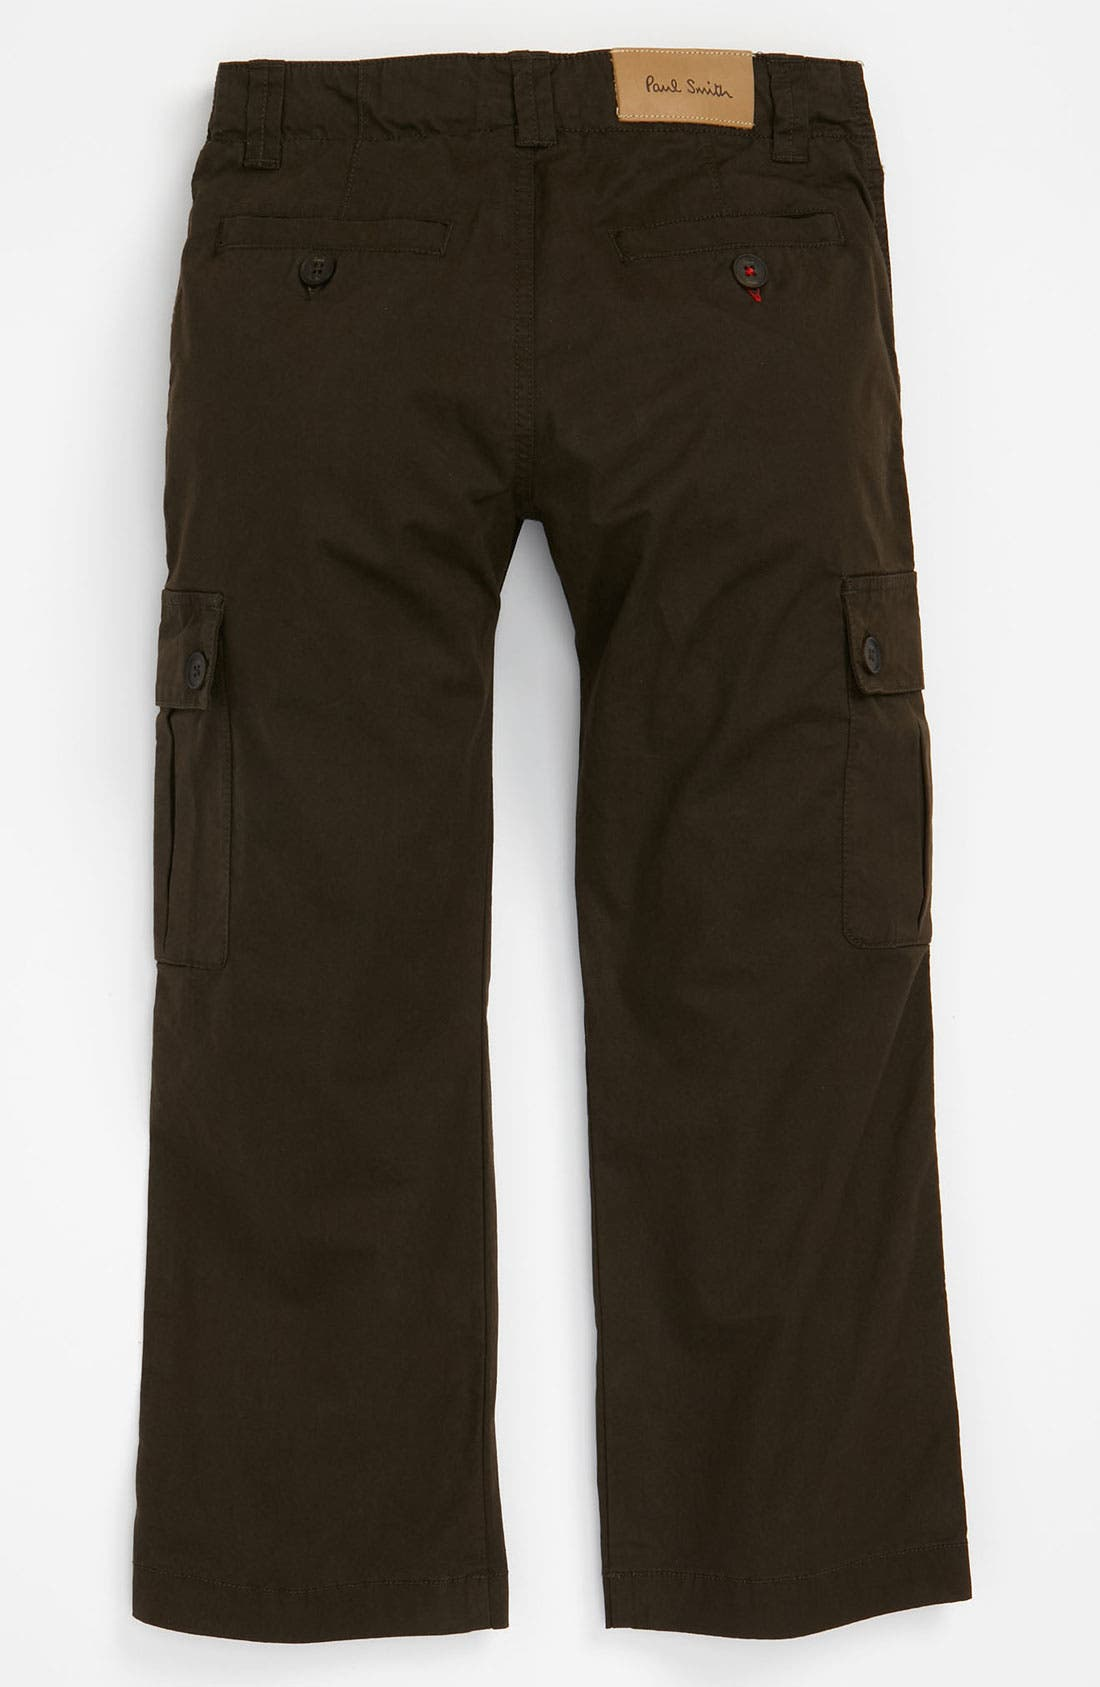 Main Image - Paul Smith Junior 'Calisto' Cargo Pants (Little Boys)